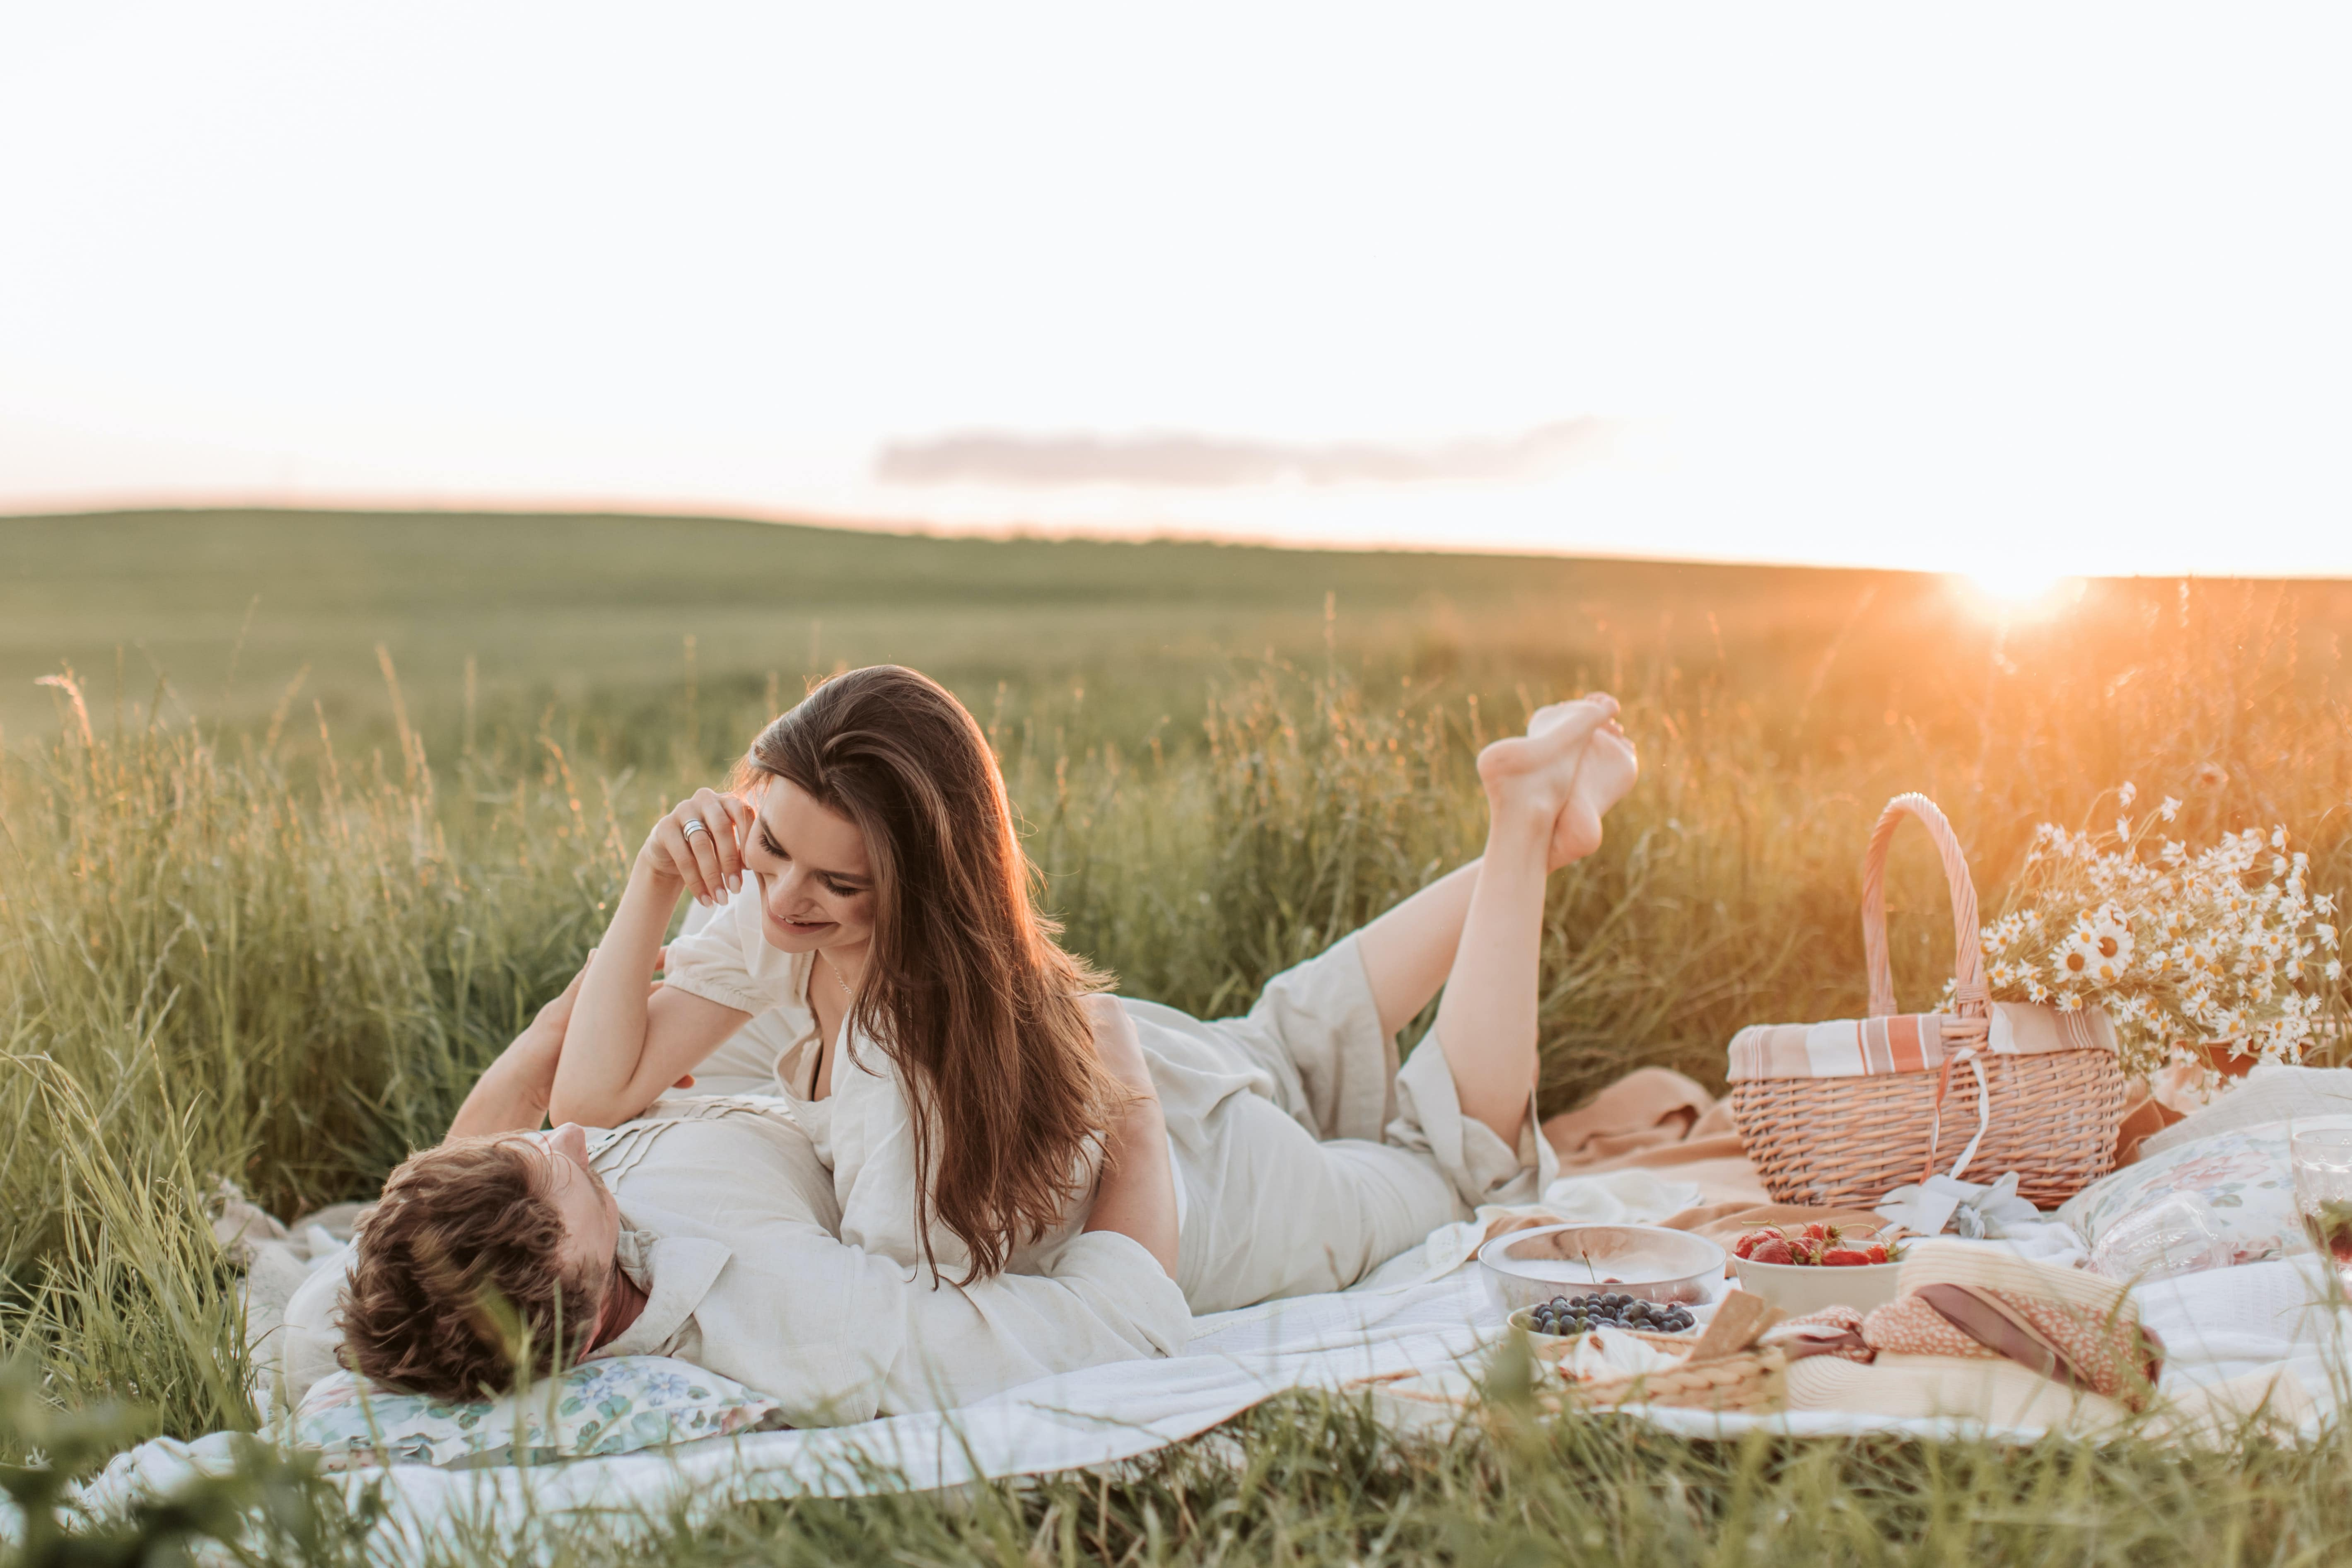 Man and woman lounging around with a picnic basket on grass